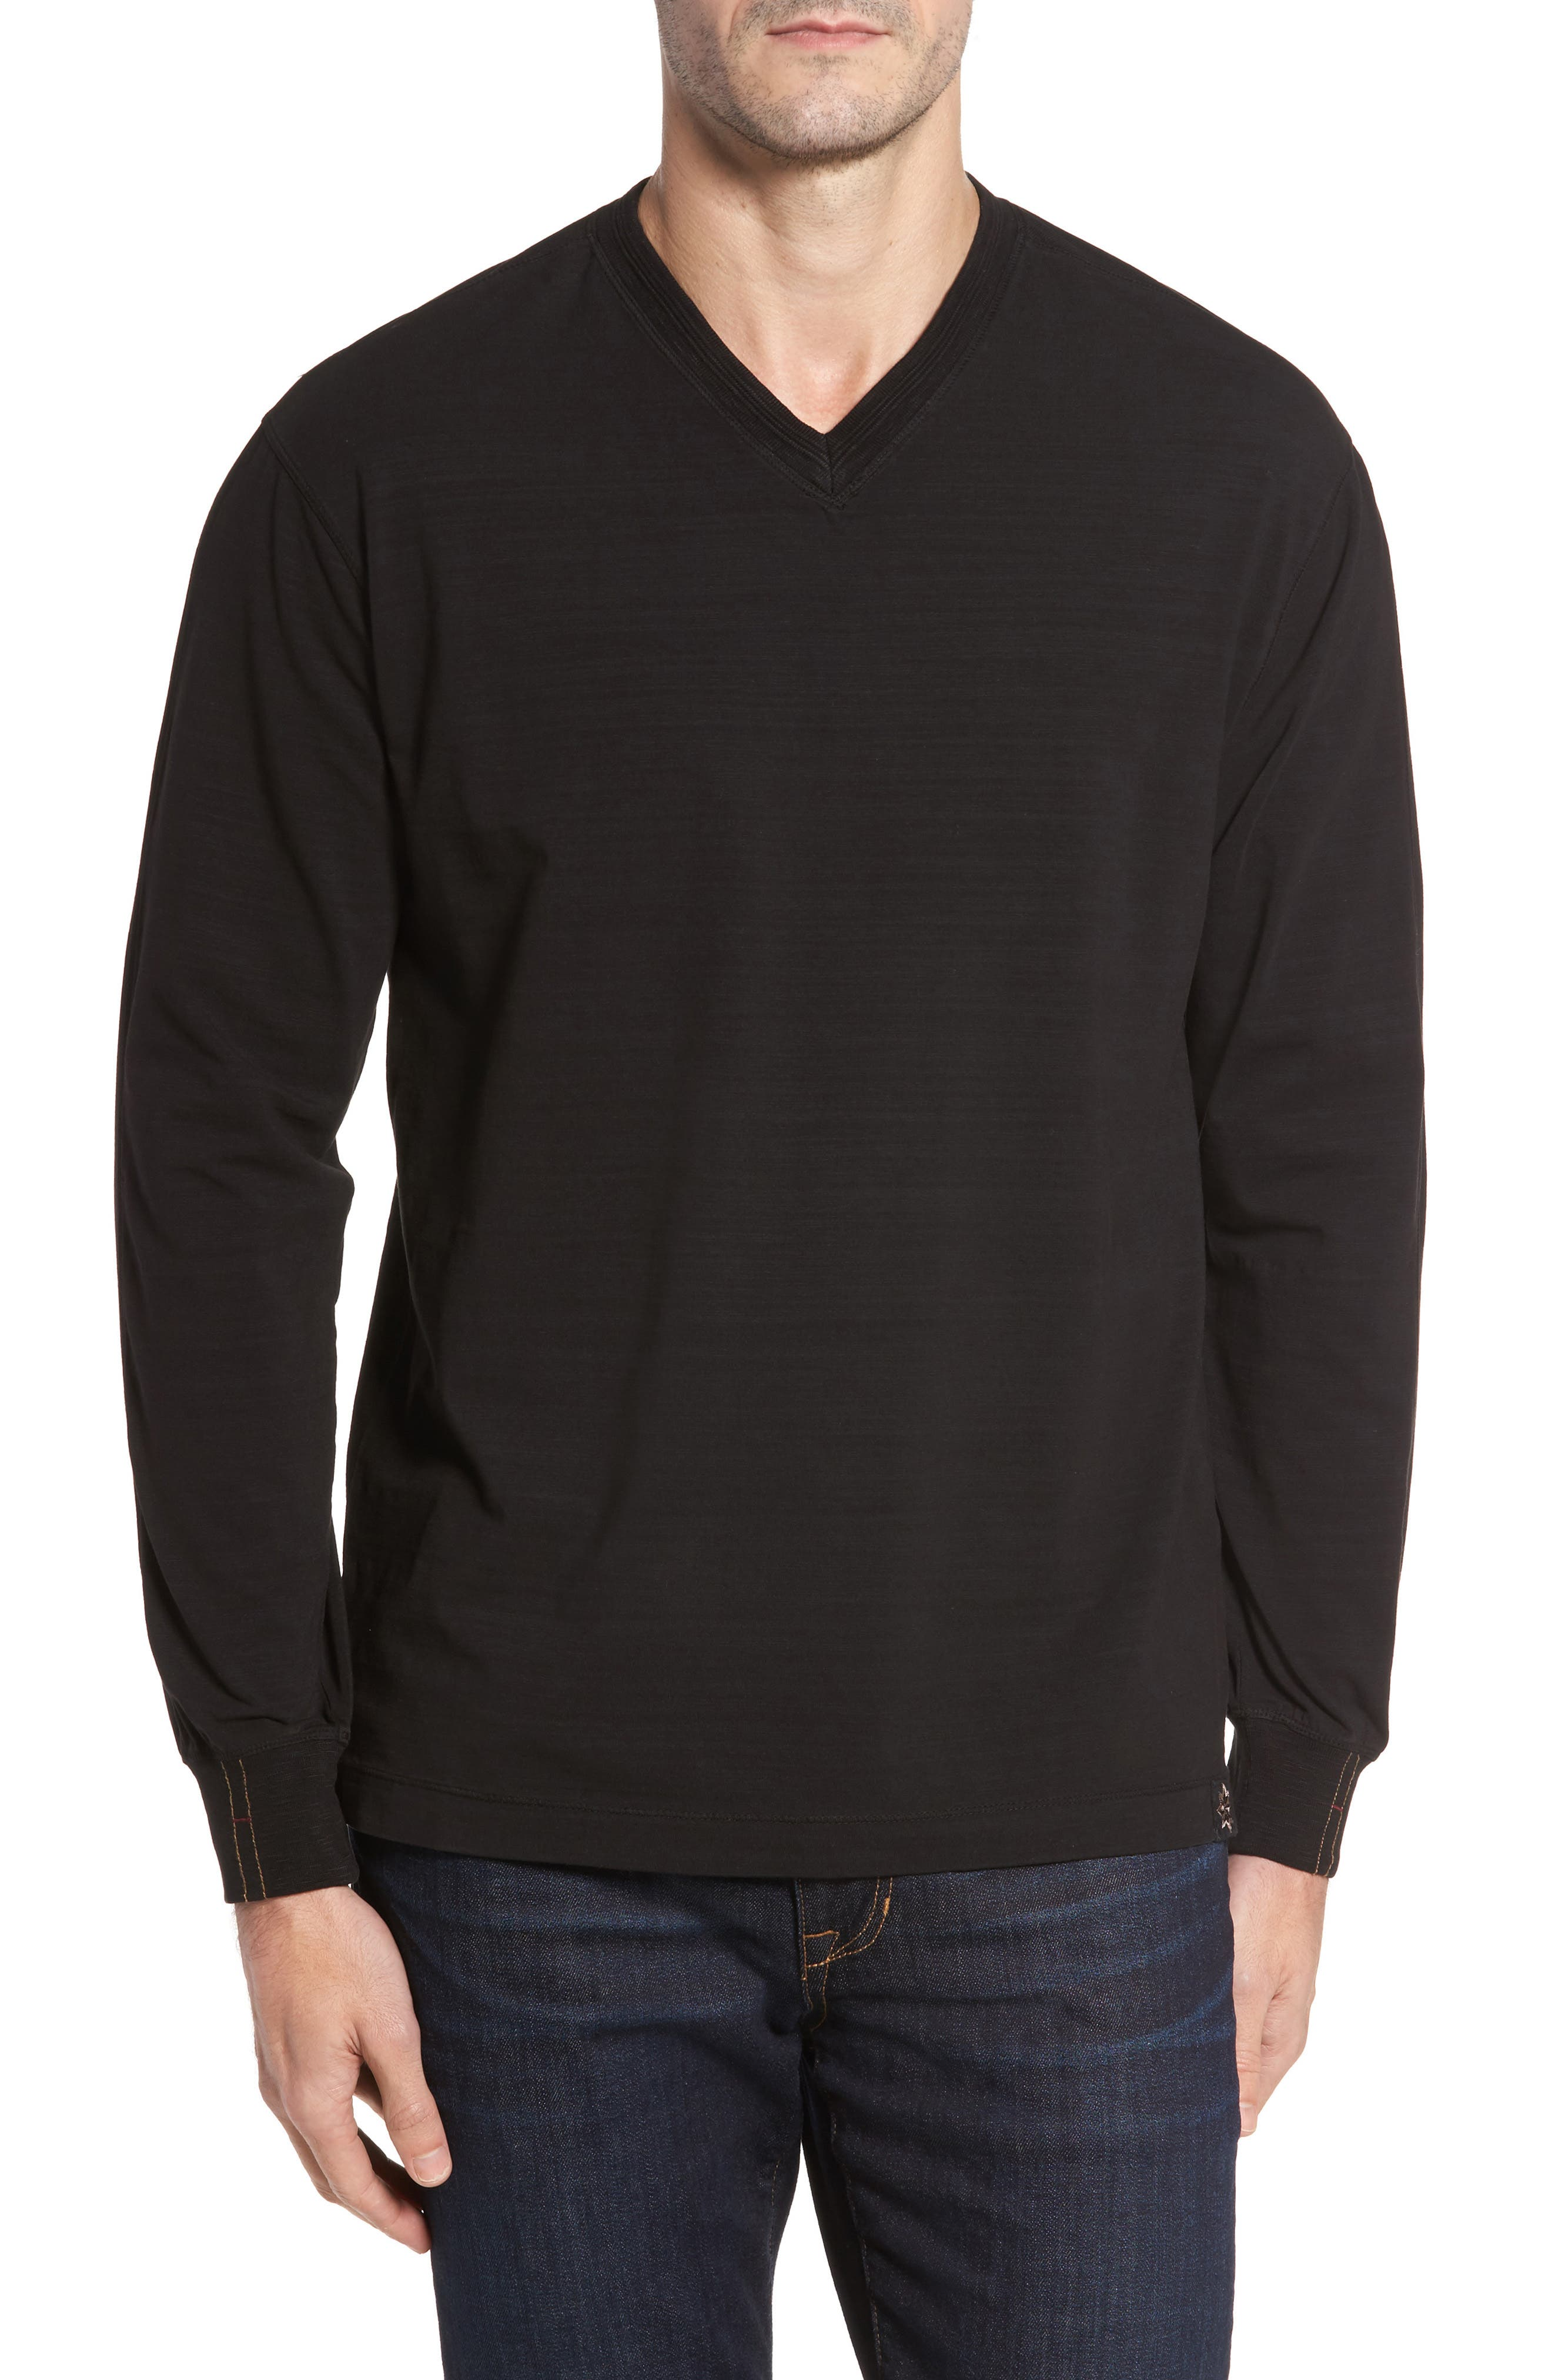 Vinn Slubbed Long Sleeve V-Neck T-Shirt,                             Main thumbnail 1, color,                             001